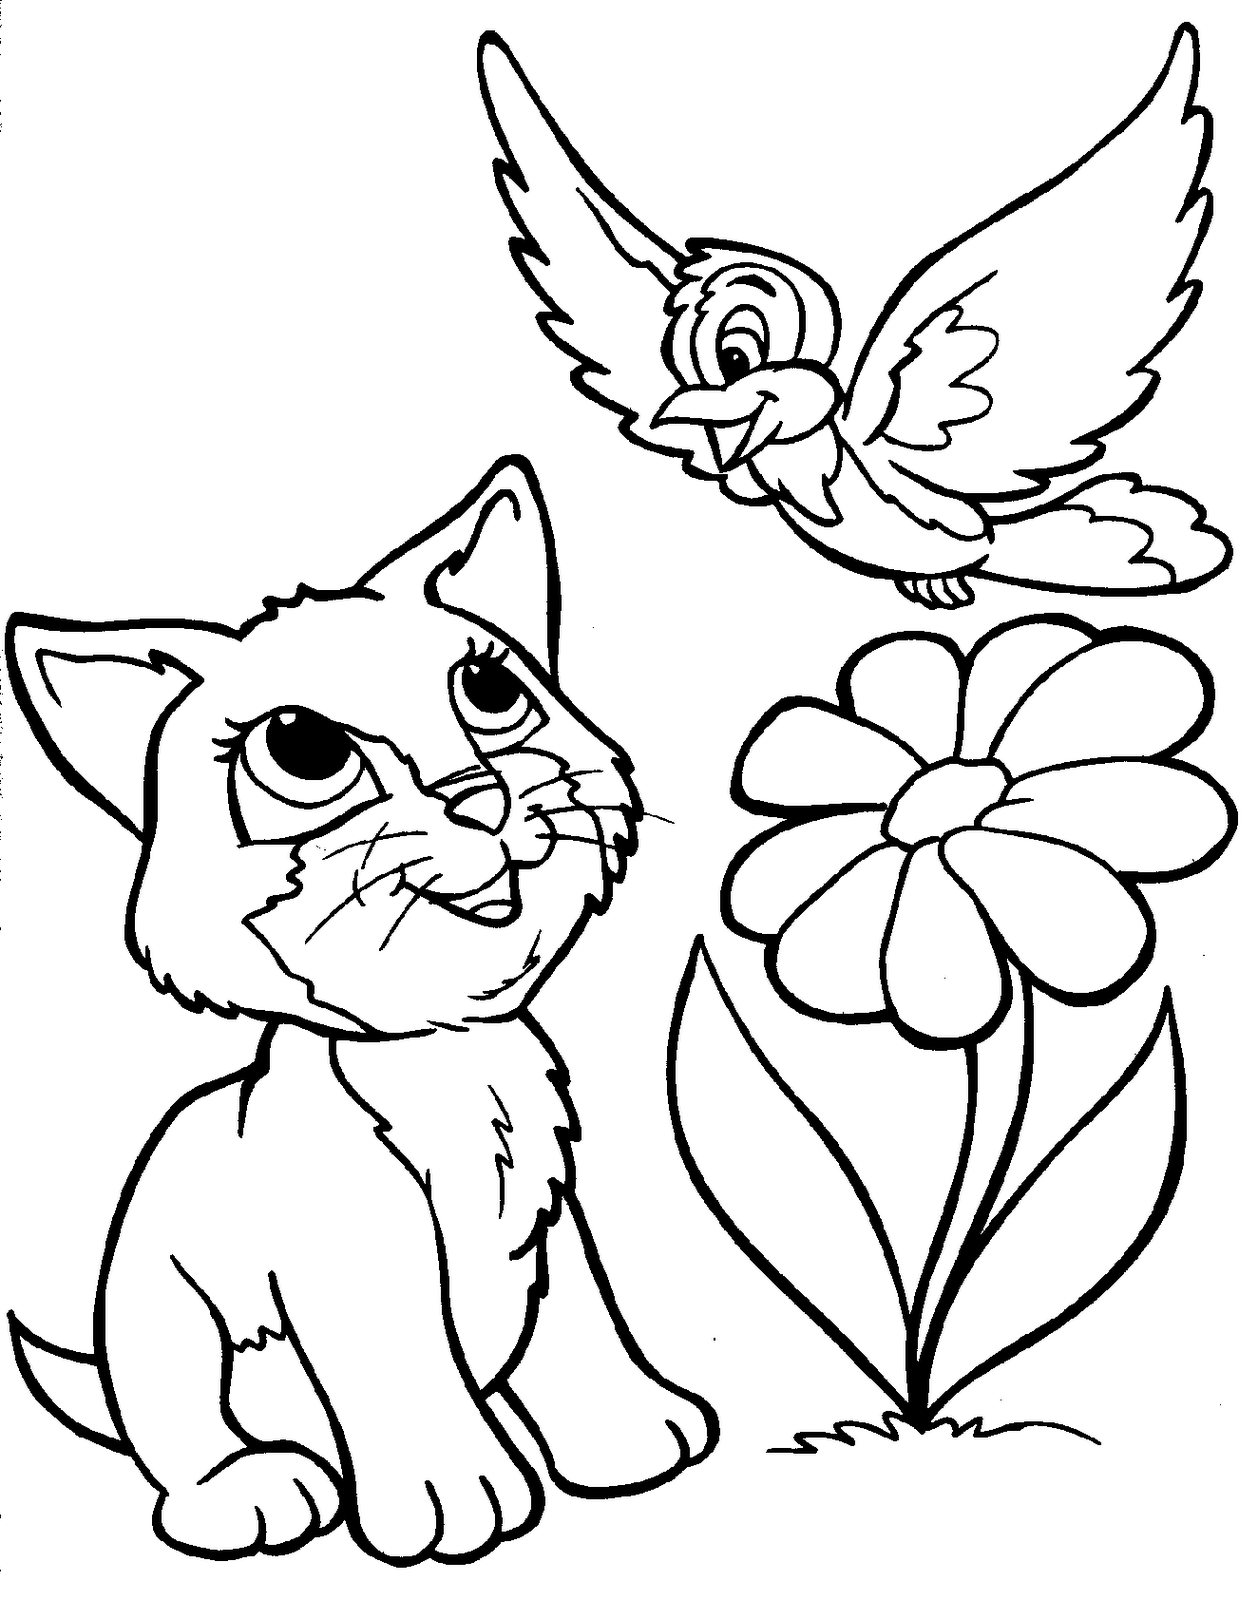 coloring pictures of cute animals cute animal coloring pages best coloring pages for kids cute pictures animals of coloring